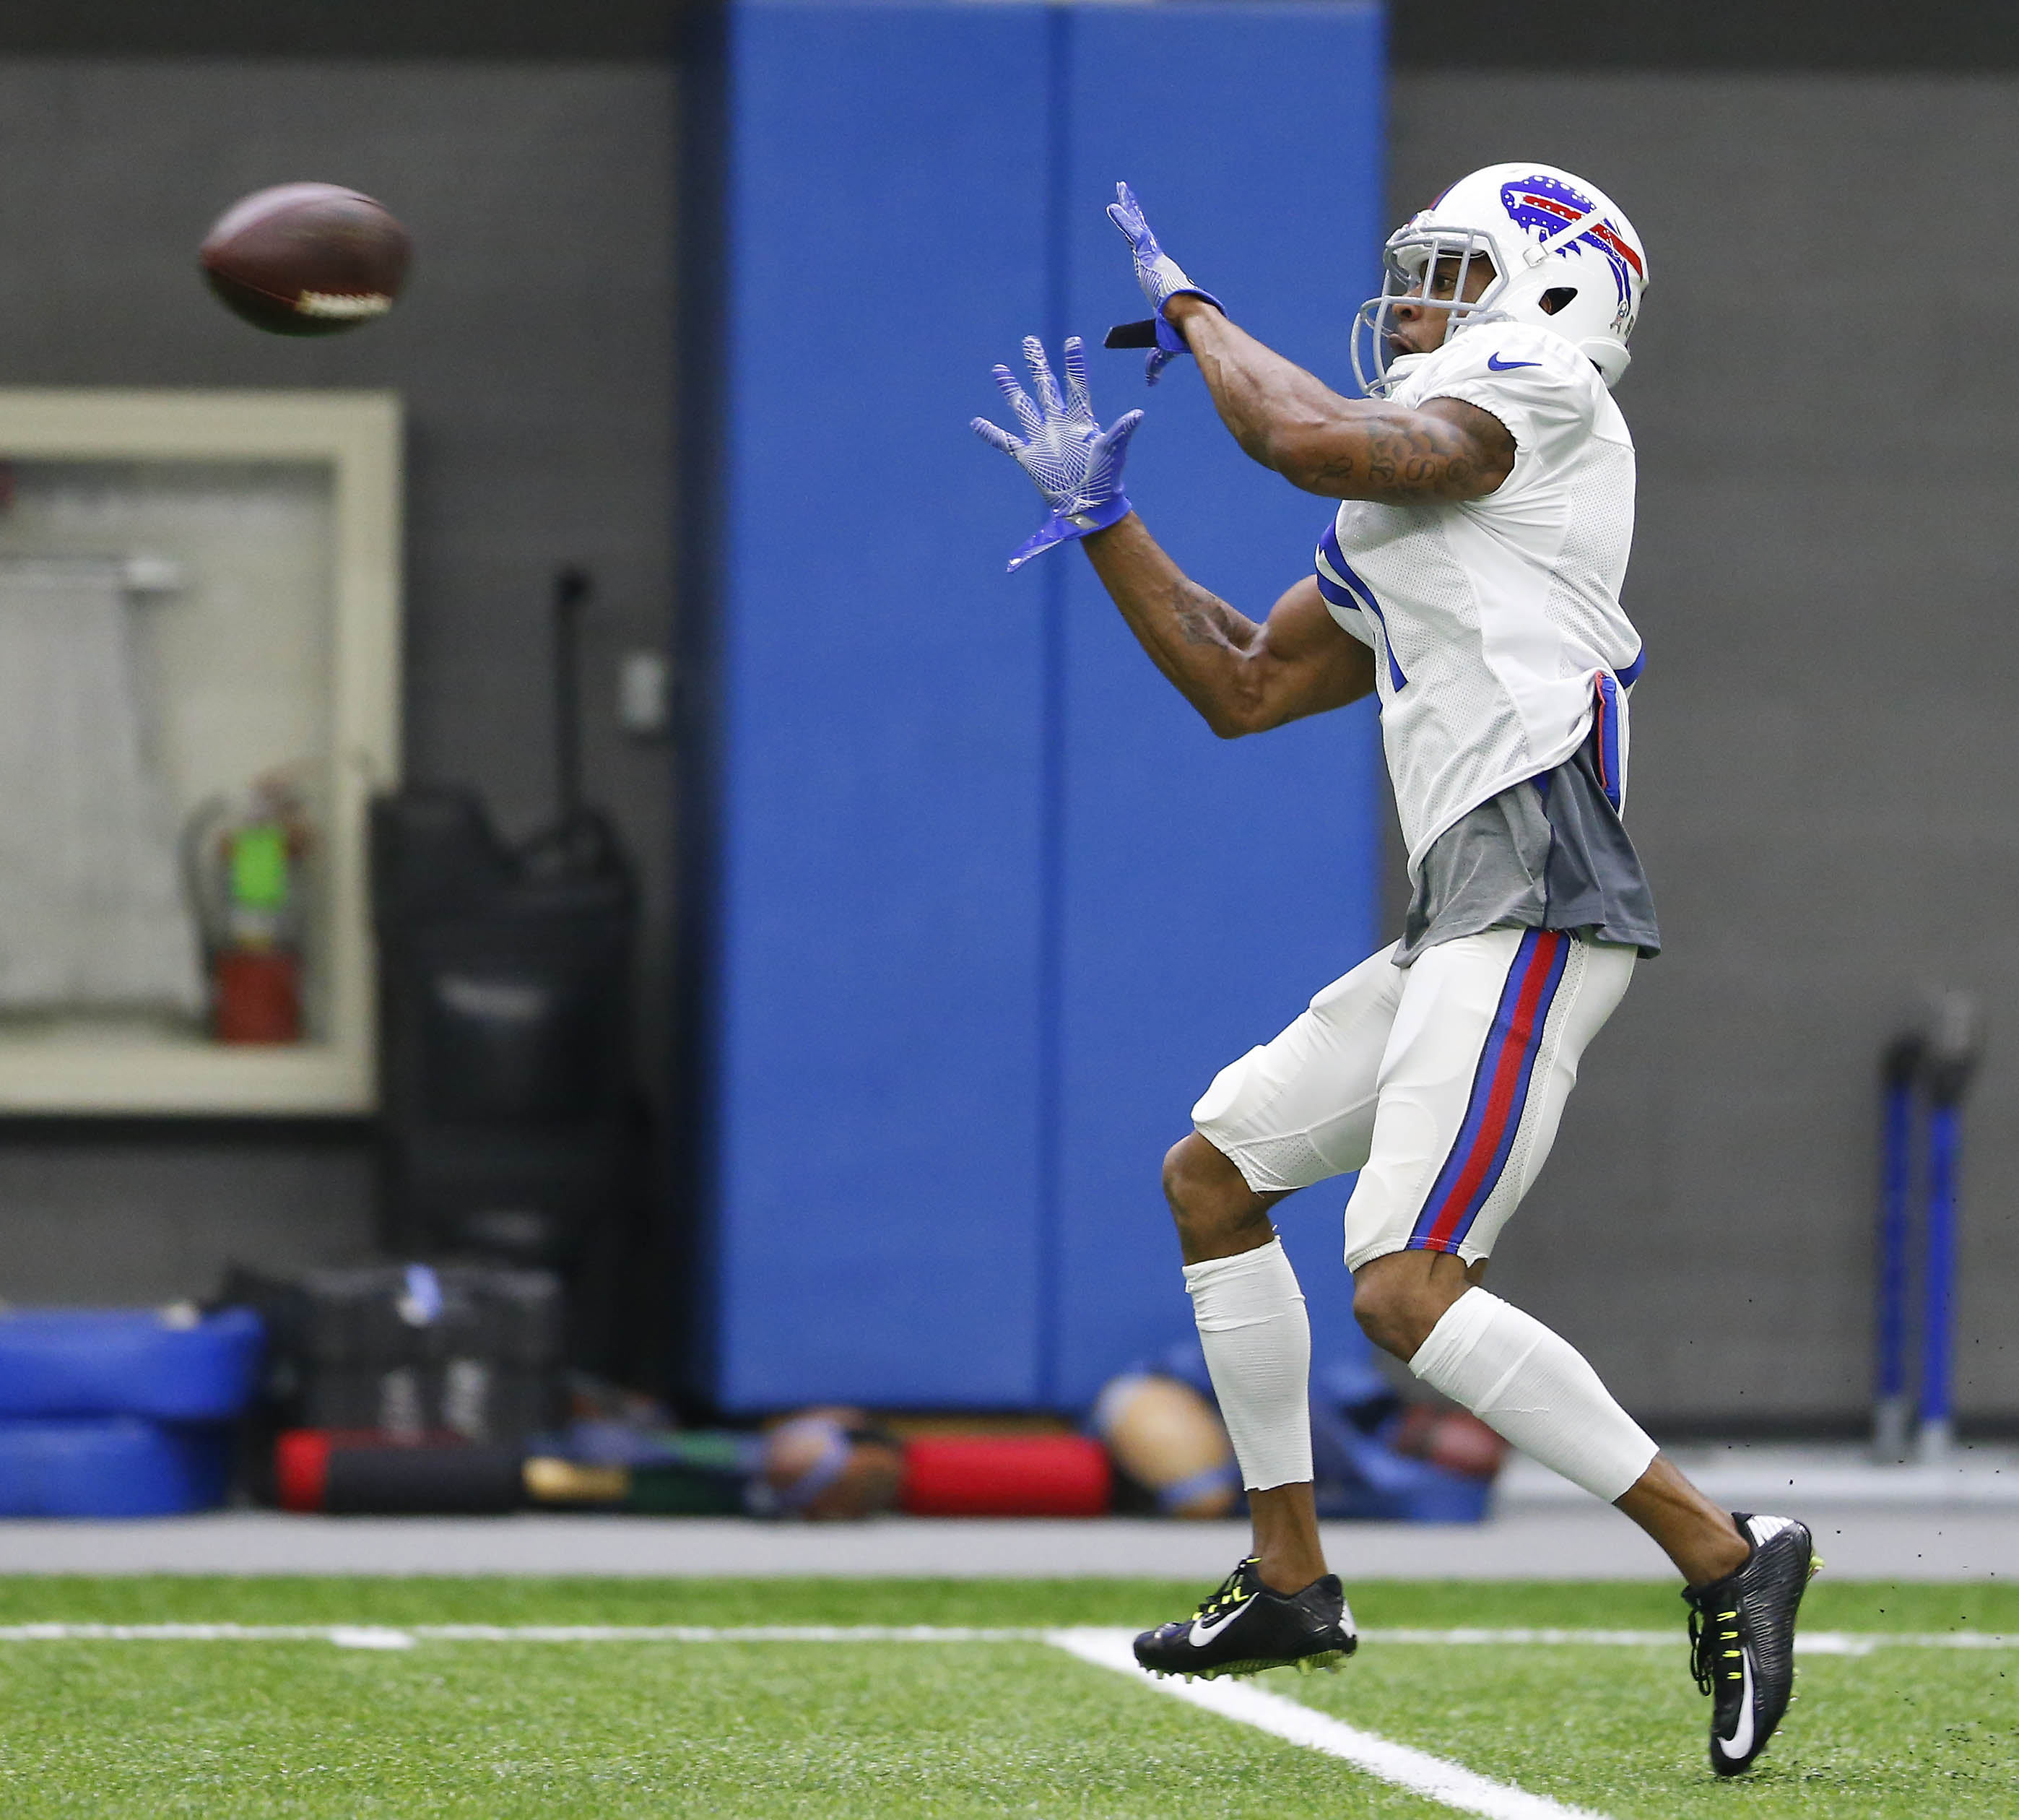 The Bills Percy Harvin makes a catch during practice in Orchard Park Thursday, Nov. 3, 2016.   (Mark Mulville/Buffalo News)